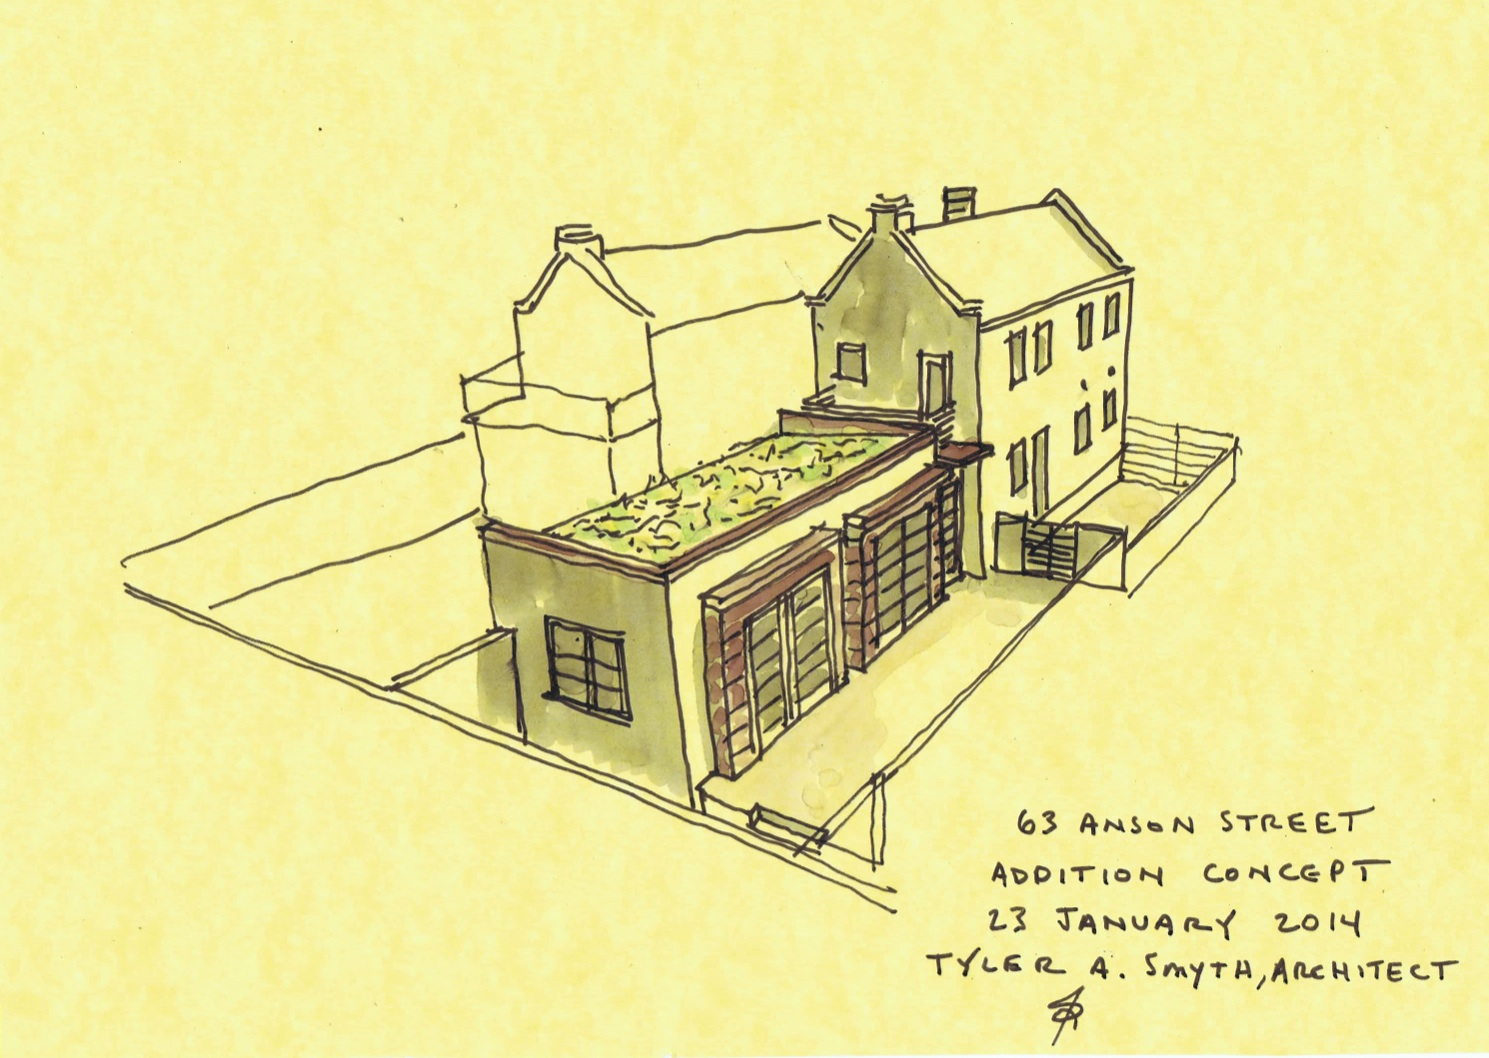 Addition concept for 19th Century Ansonborough dependency; a parapet wall makes reference to the existing structure while accommodating green roof.